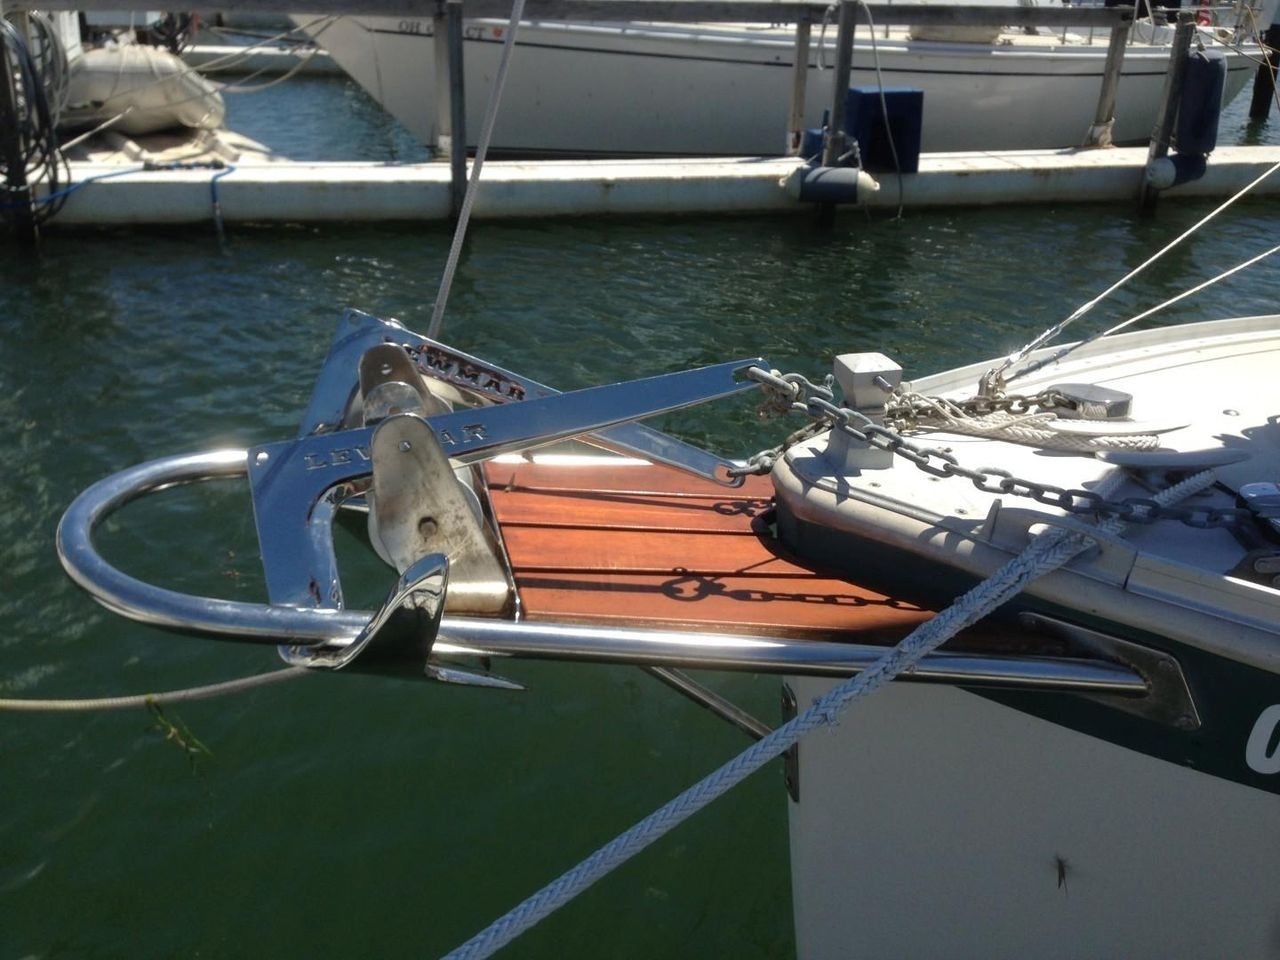 1987 Used Nonsuch 22 Daysailer Sailboat For Sale - $18,000